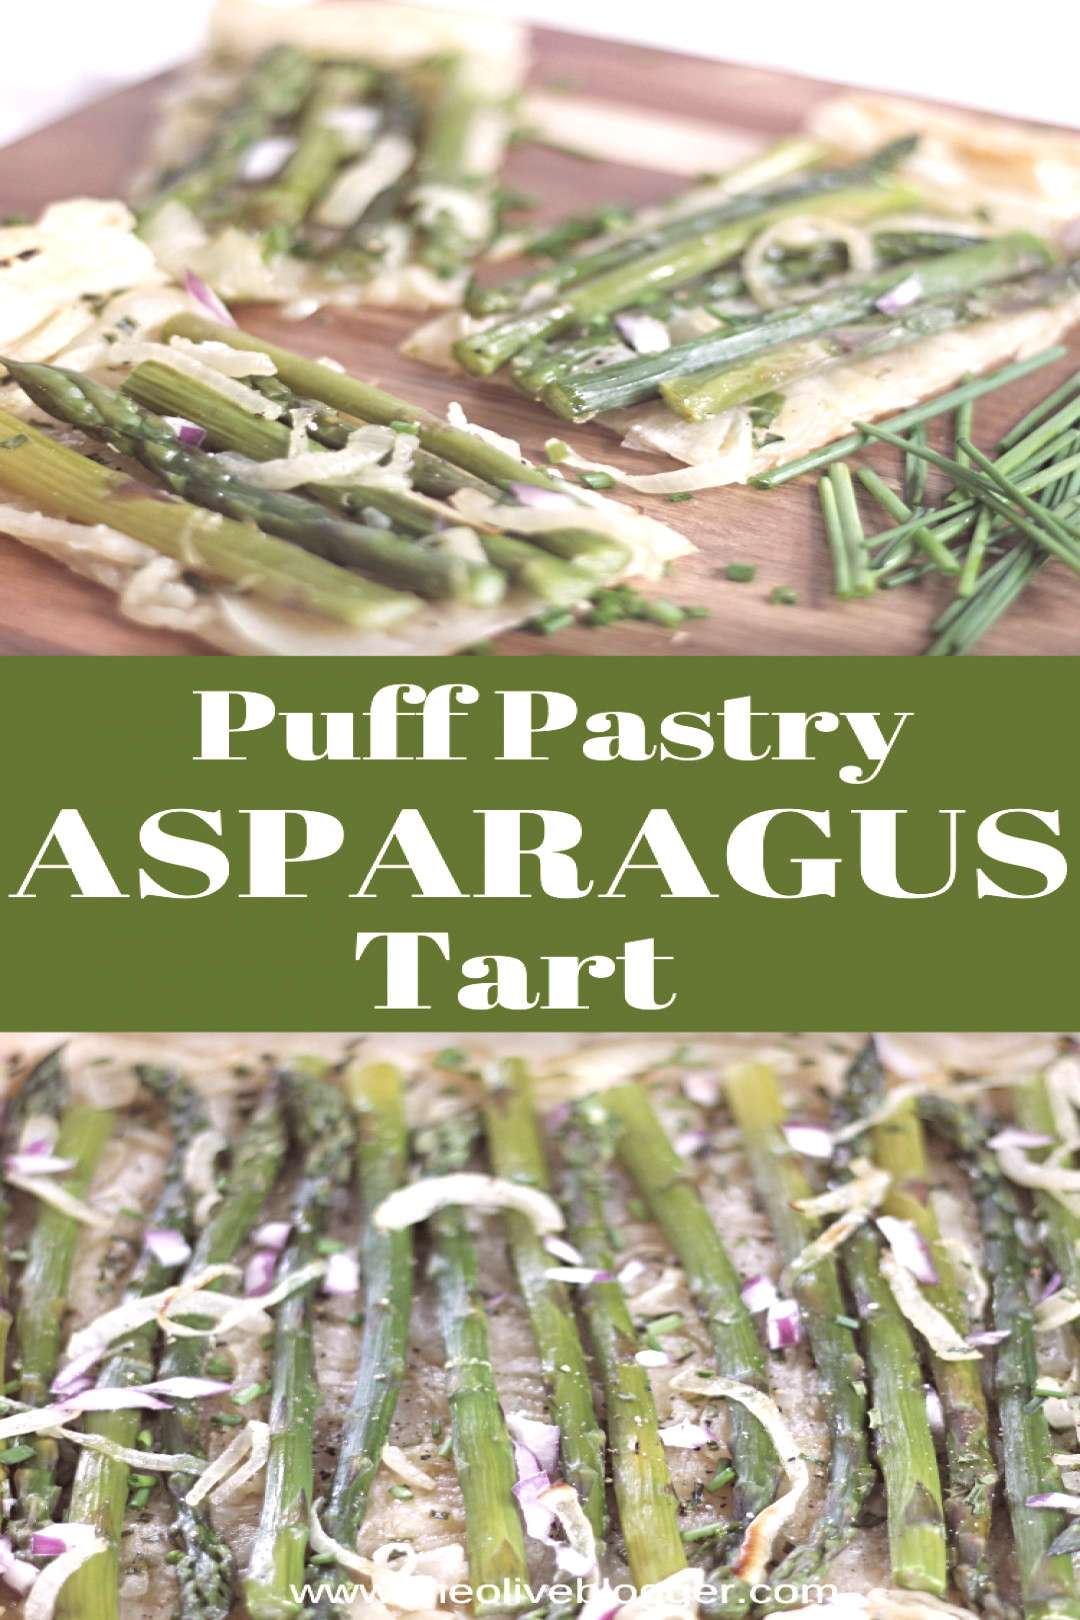 Puff Pastry Asparagus Tart - an easy appetizer or addition to your holiday meals, this Puff Pastry